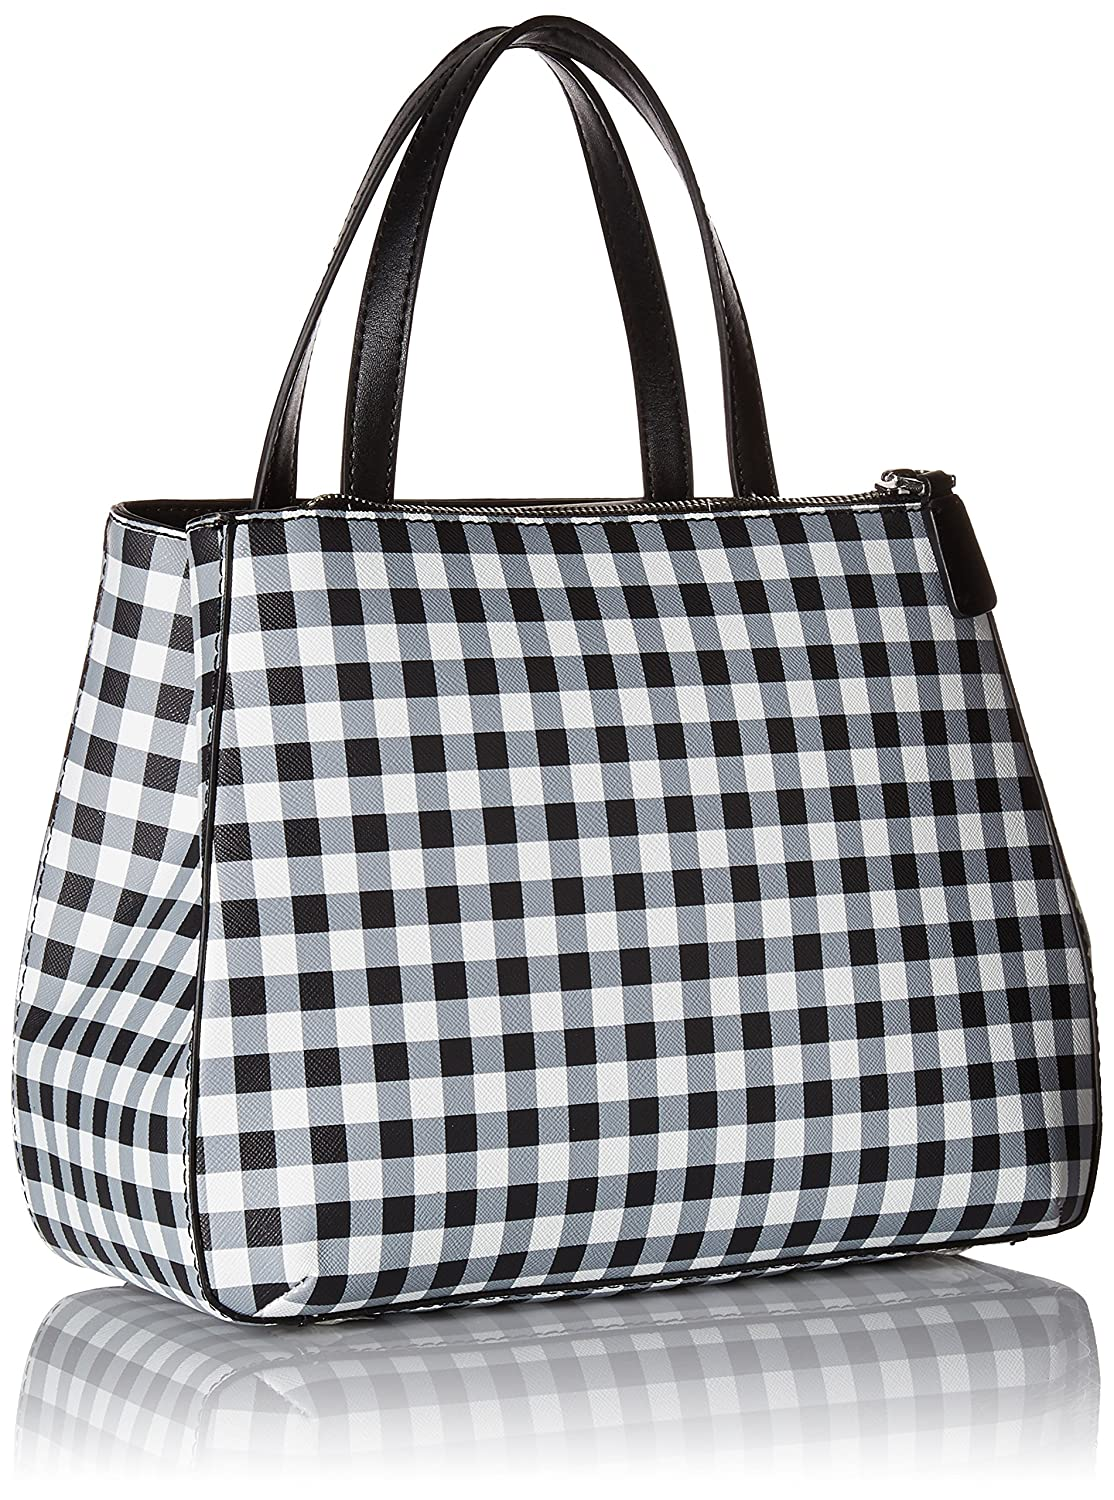 BORSA GUESS JENNIFER LOPEZ BRITTA HANDBAG GI669305 CHECKER